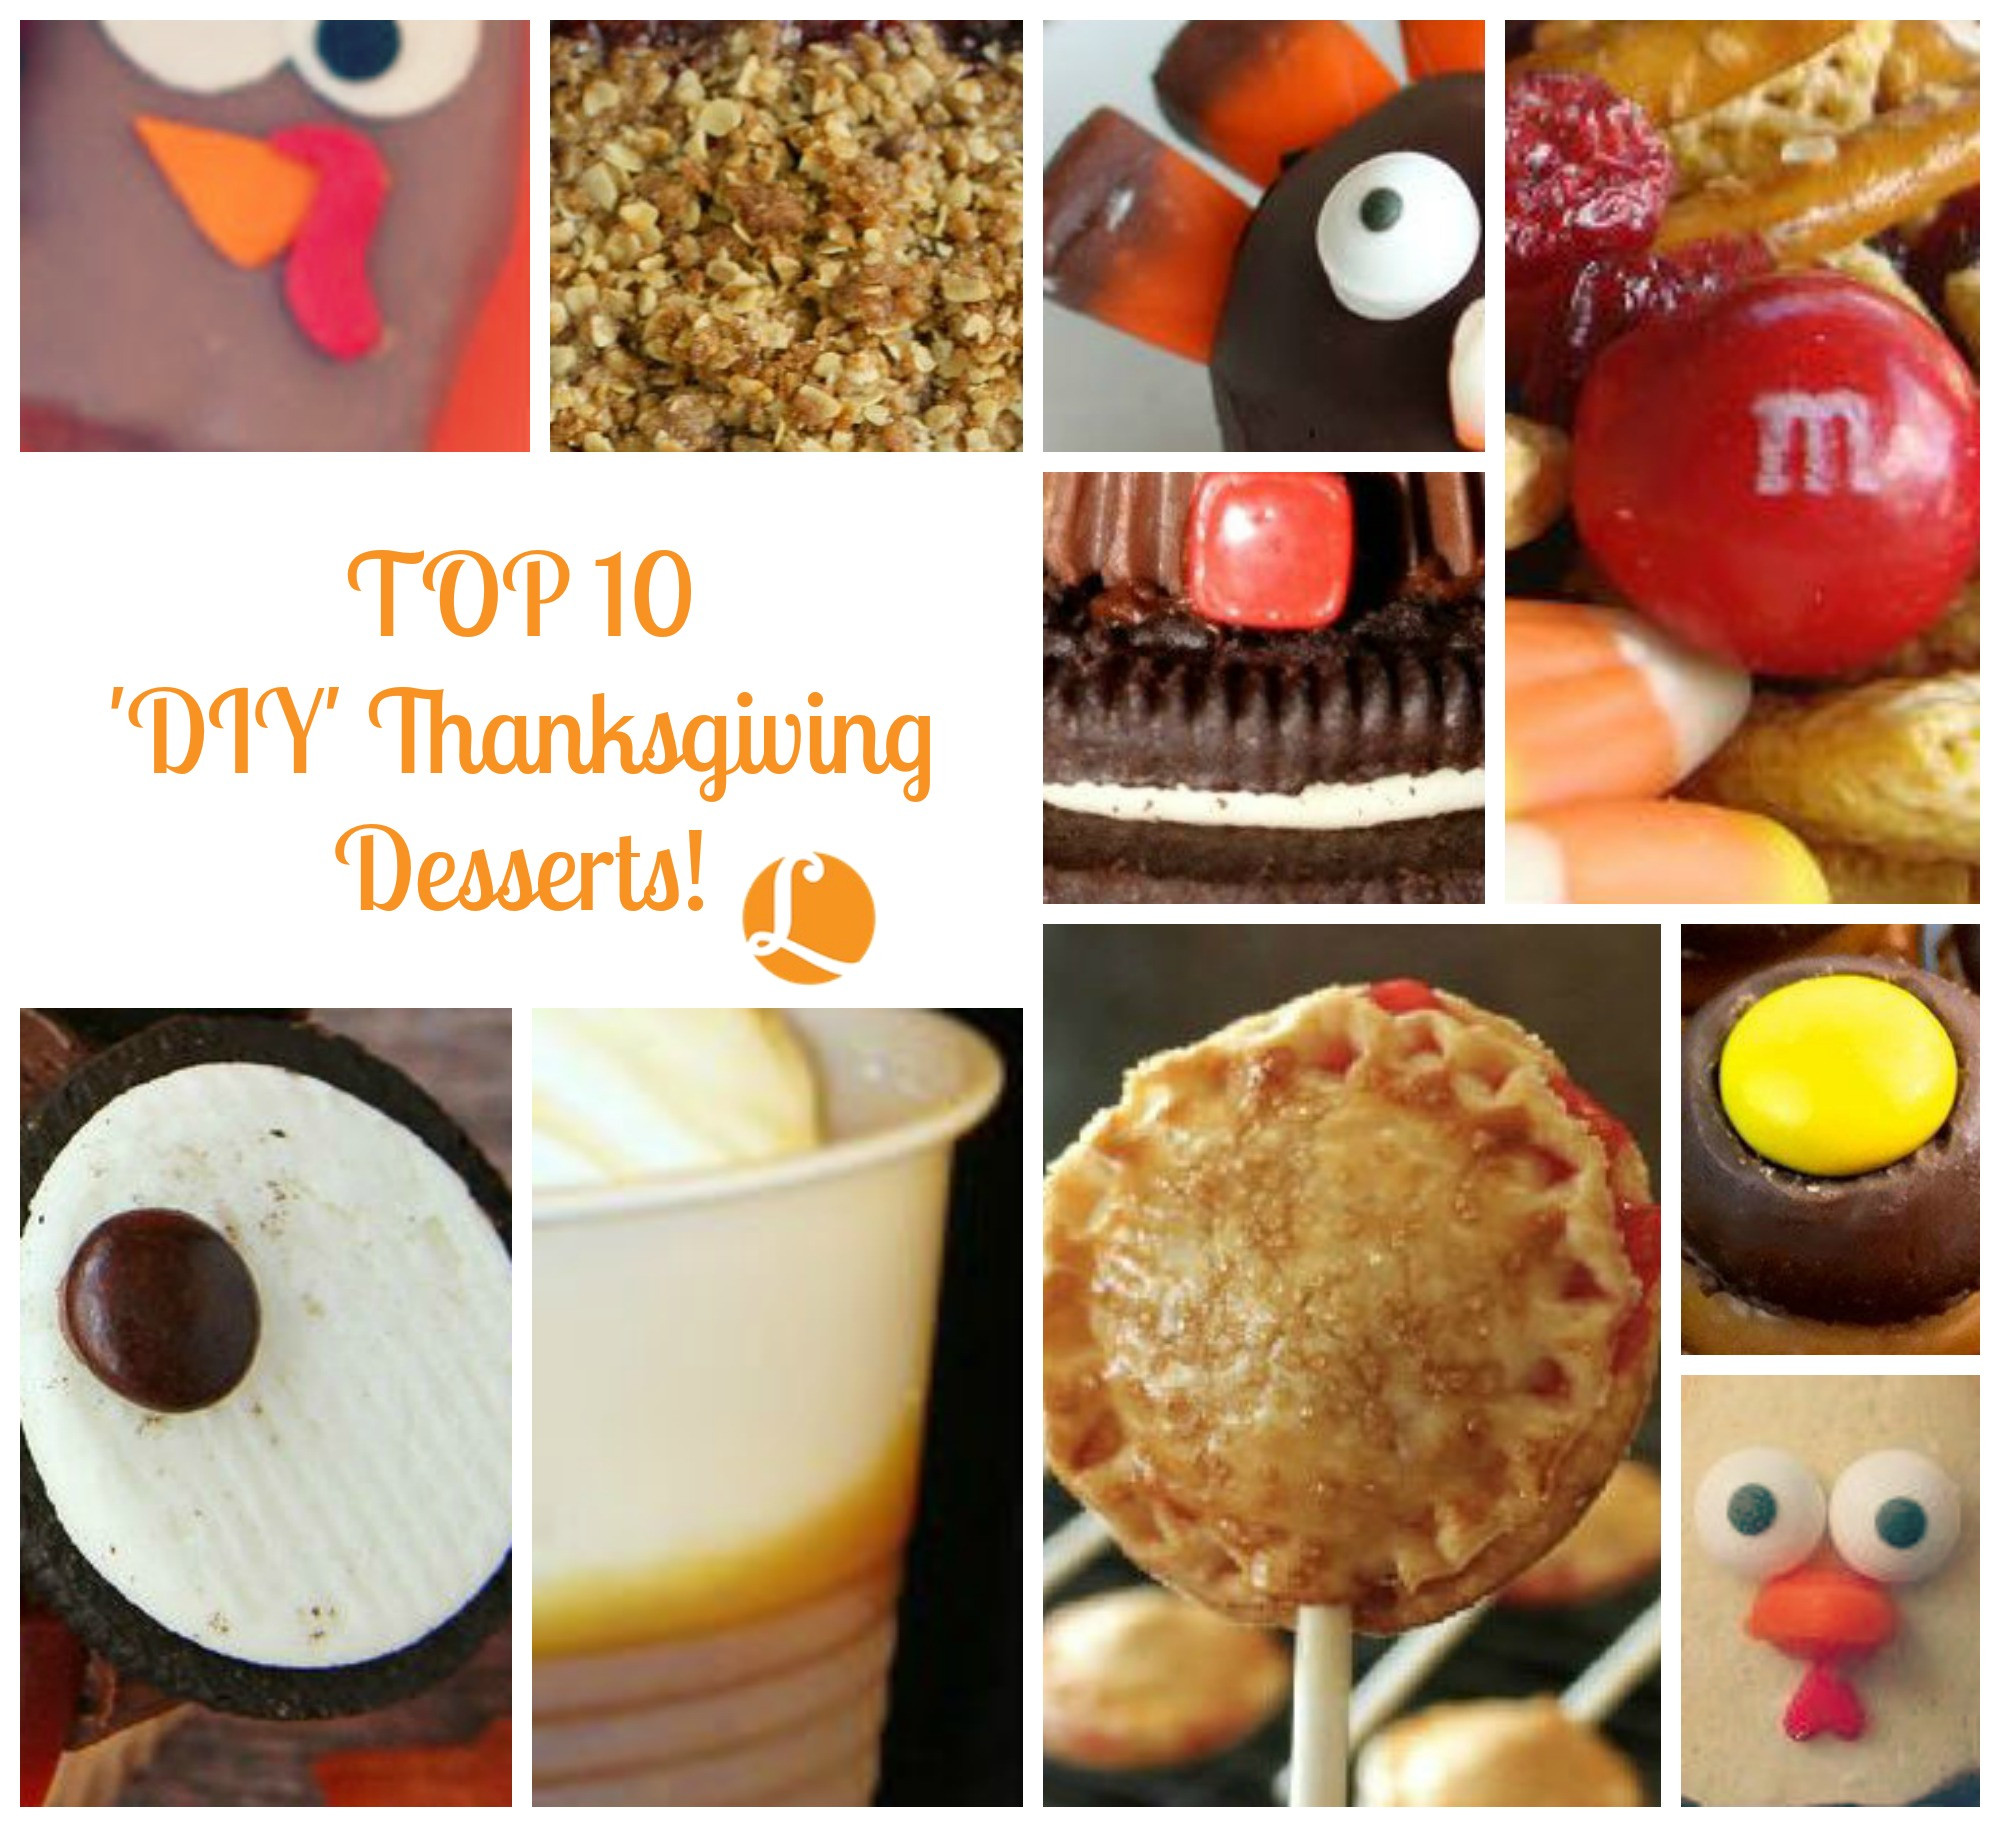 Diy Thanksgiving Desserts  Top 10 DIY Thanksgiving Desserts Living Rich With Coupons